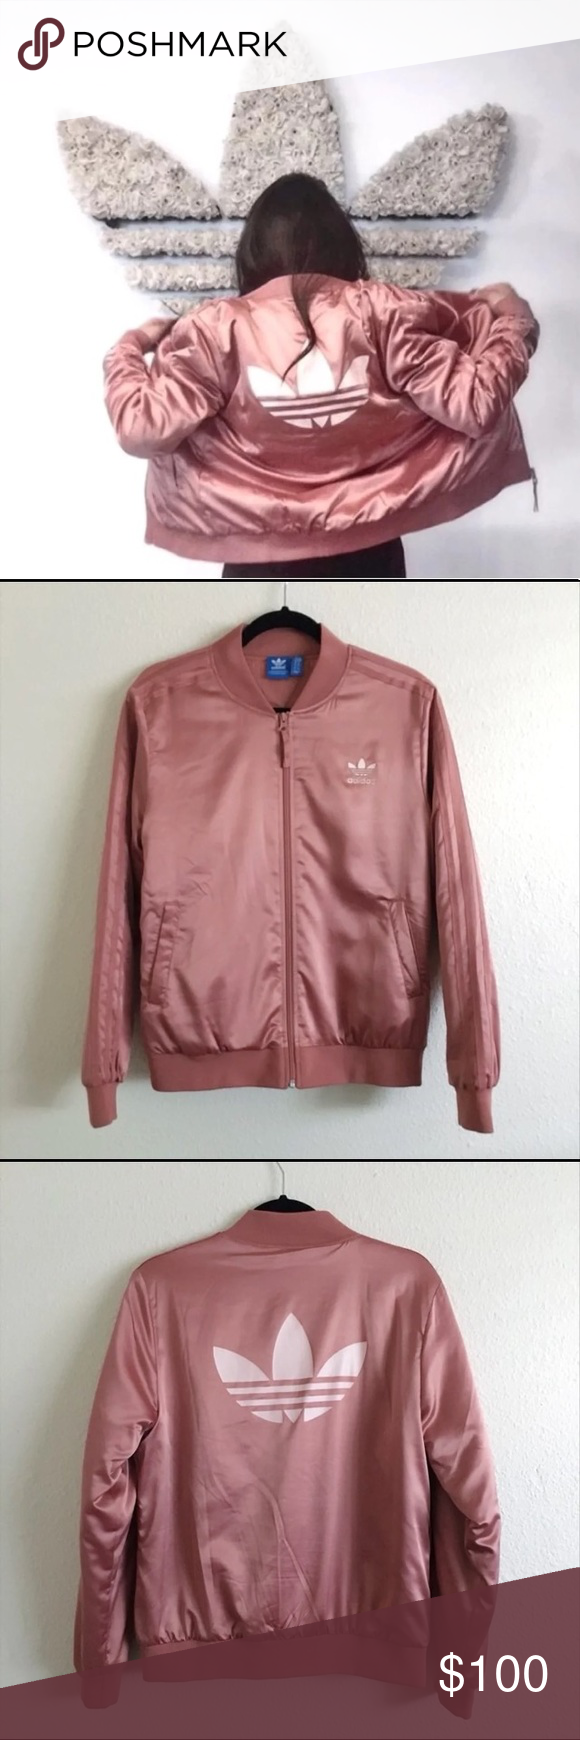 7ef8ec236 Limited edition Adidas bomber jacket Sold out everywhere Adidas ...